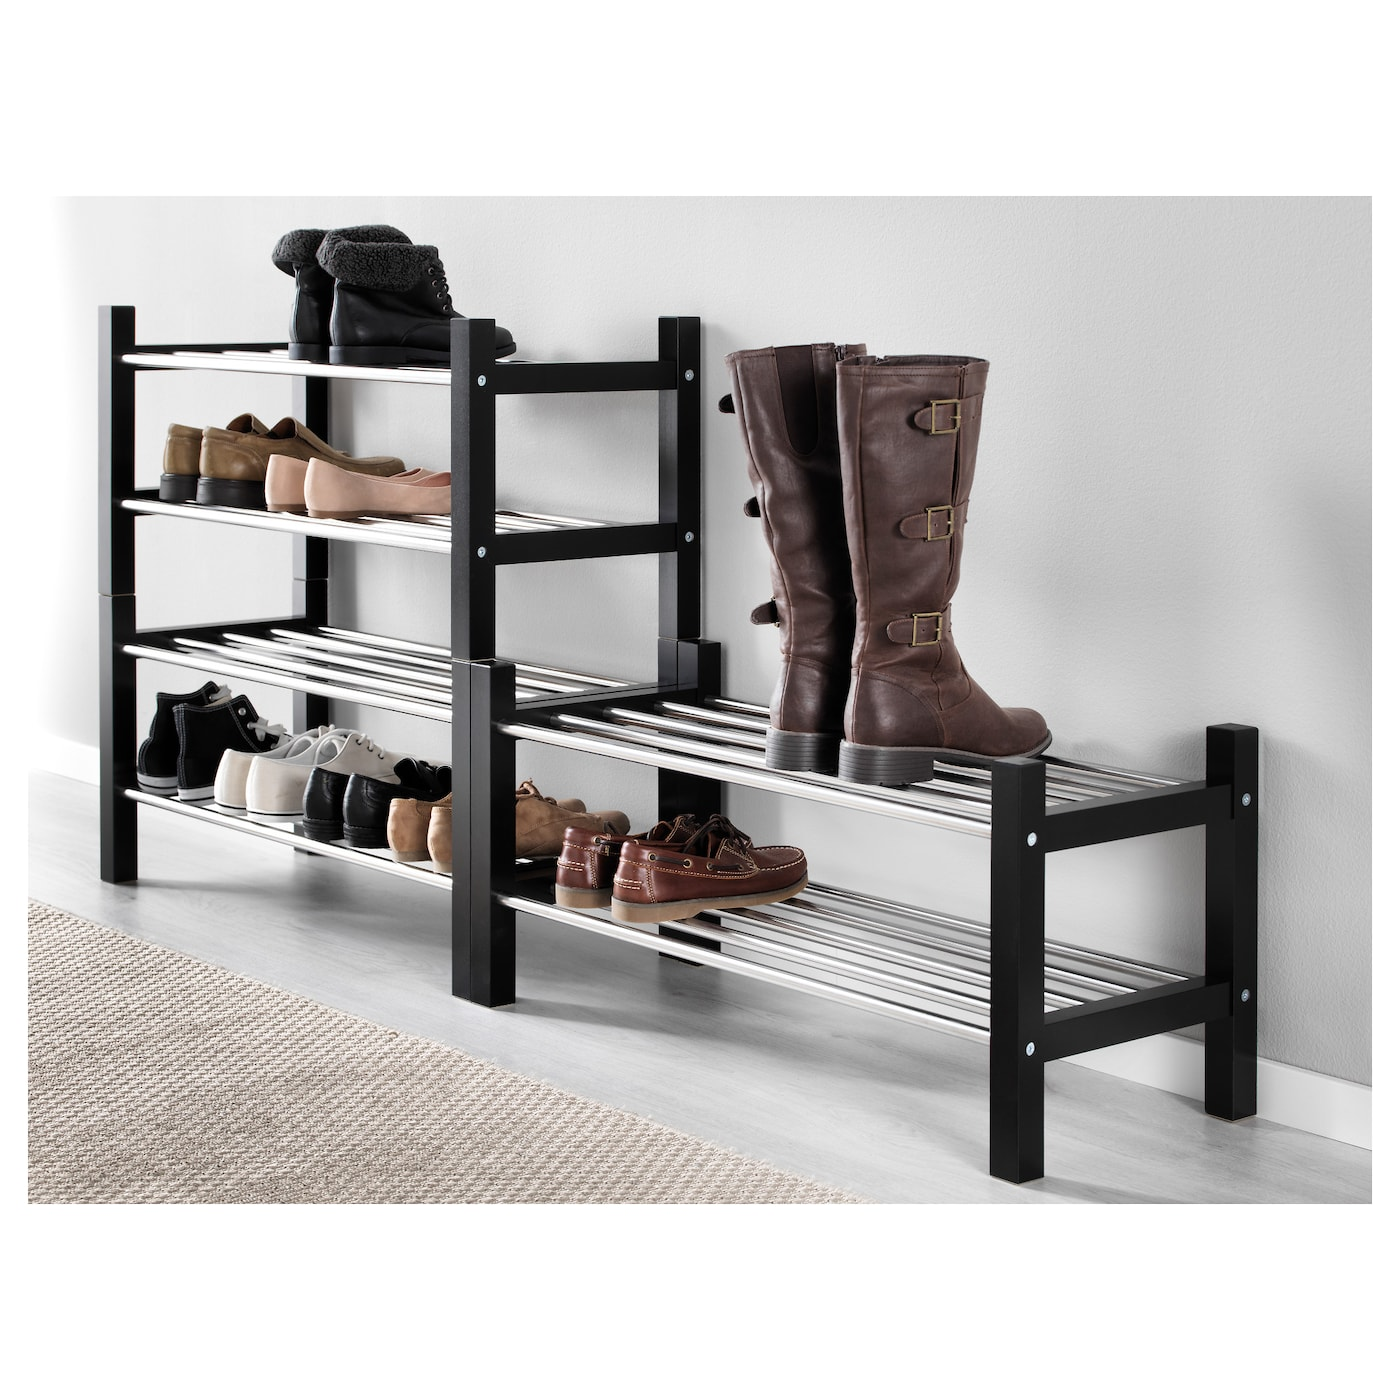 tjusig shoe rack black 79 cm ikea ikea shoe rack ajarin